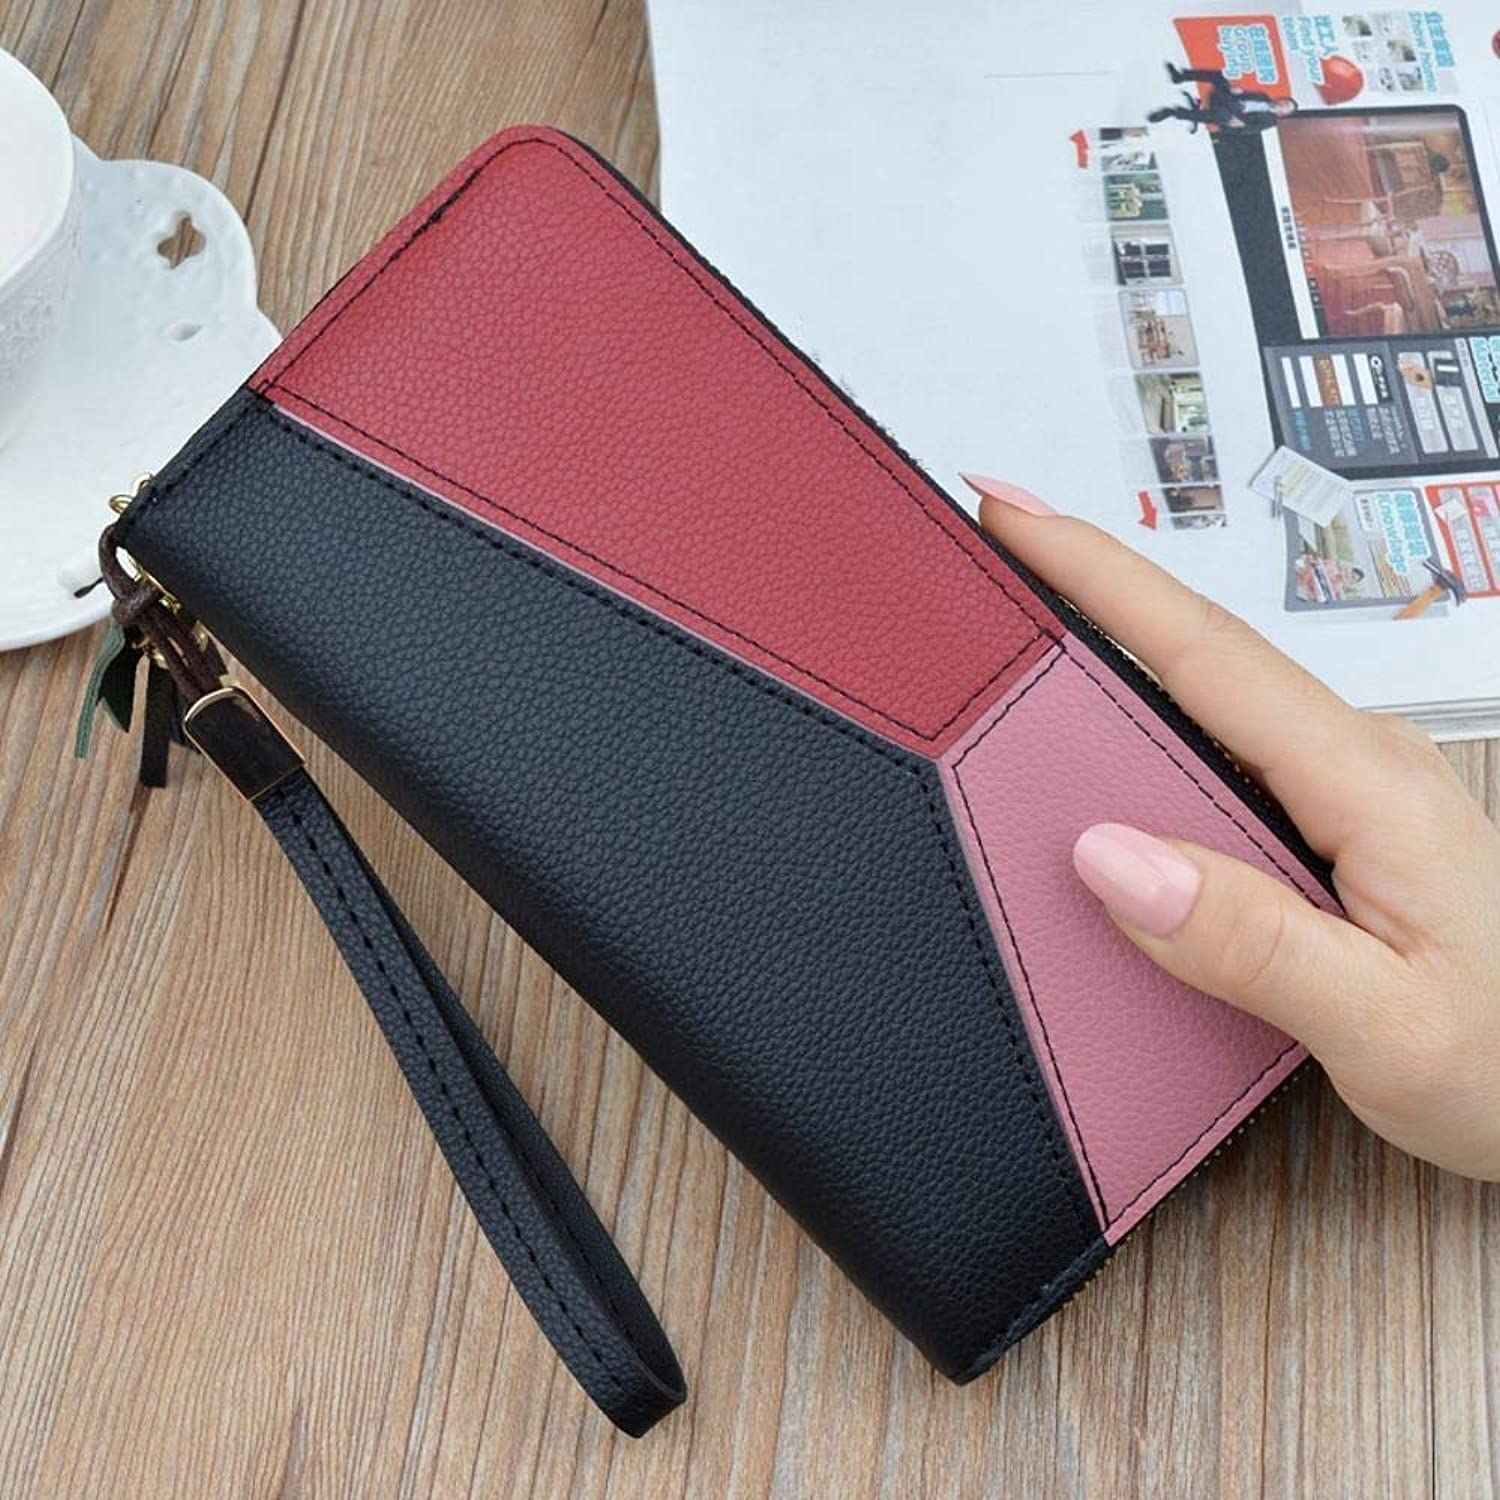 Girls Purse Women's Wallet,Ladies Wallet Large Zipper Multifunctional Hand Bag Female Bulk Wallet PU Leather (color   H)